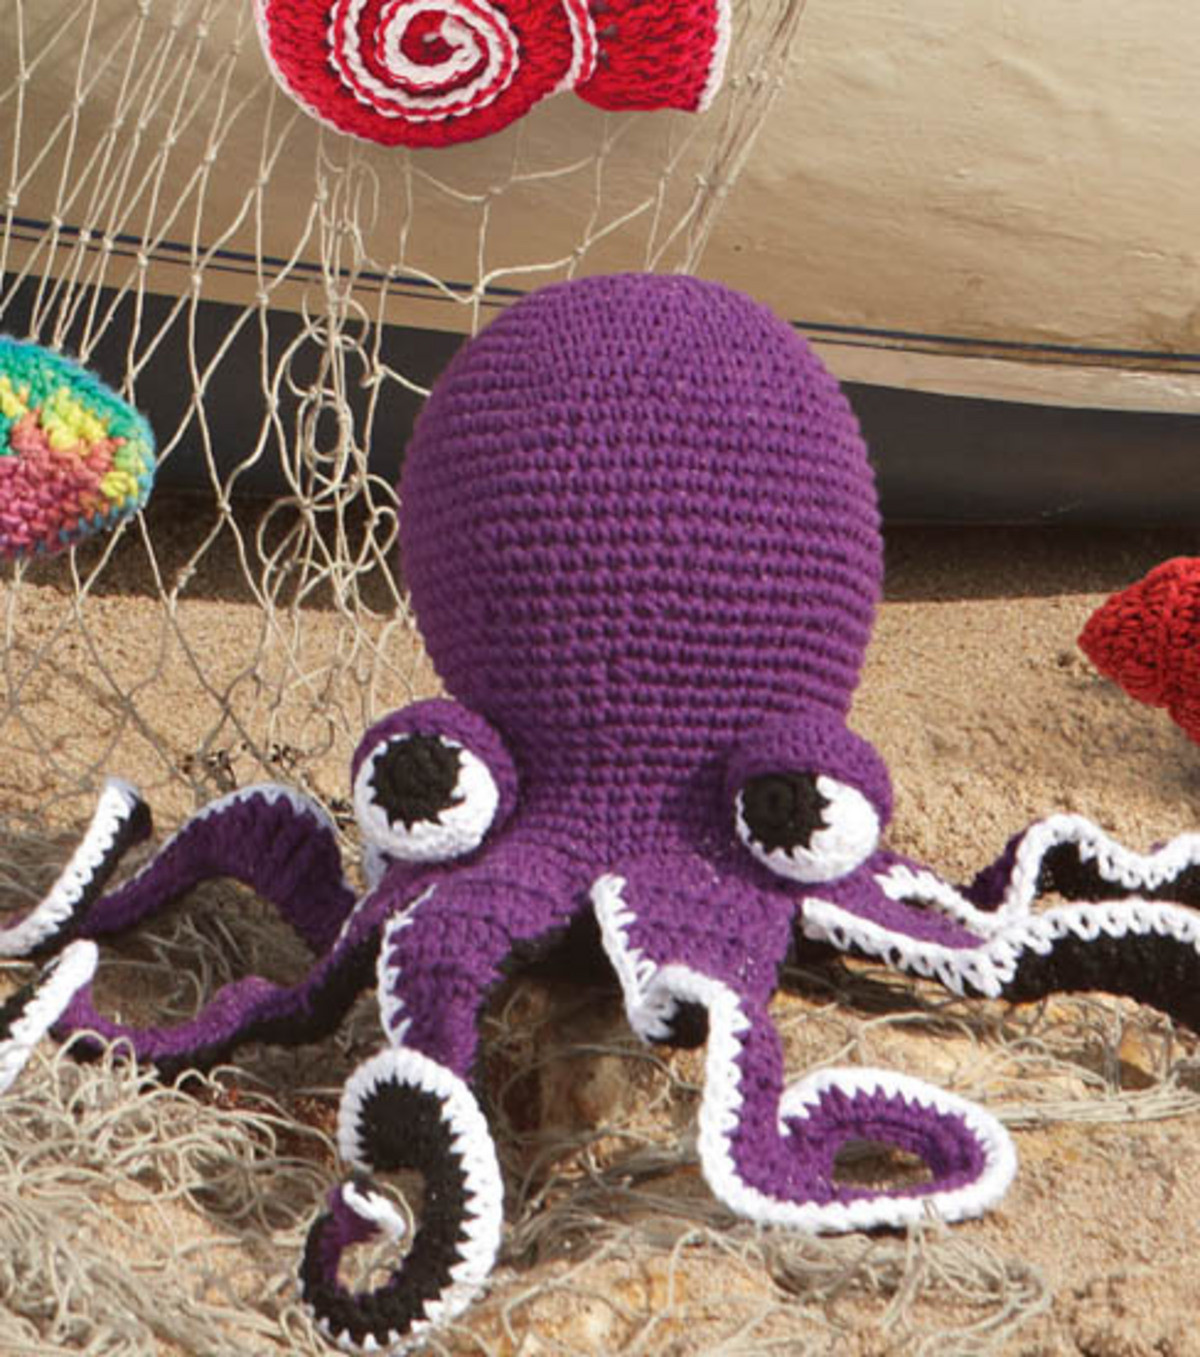 Crochet Octopus Pattern Luxury Free Crochet Patterns Beach Bag Crab and Shell Of Amazing 50 Photos Crochet Octopus Pattern